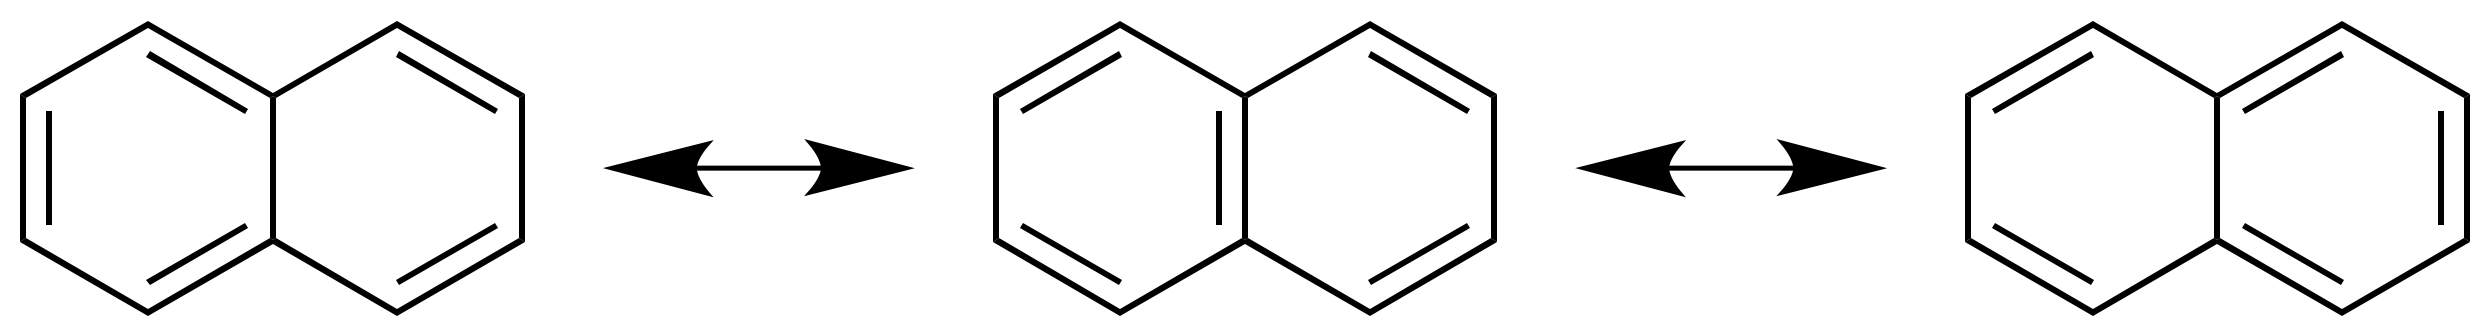 Resonace structures of naphthalene